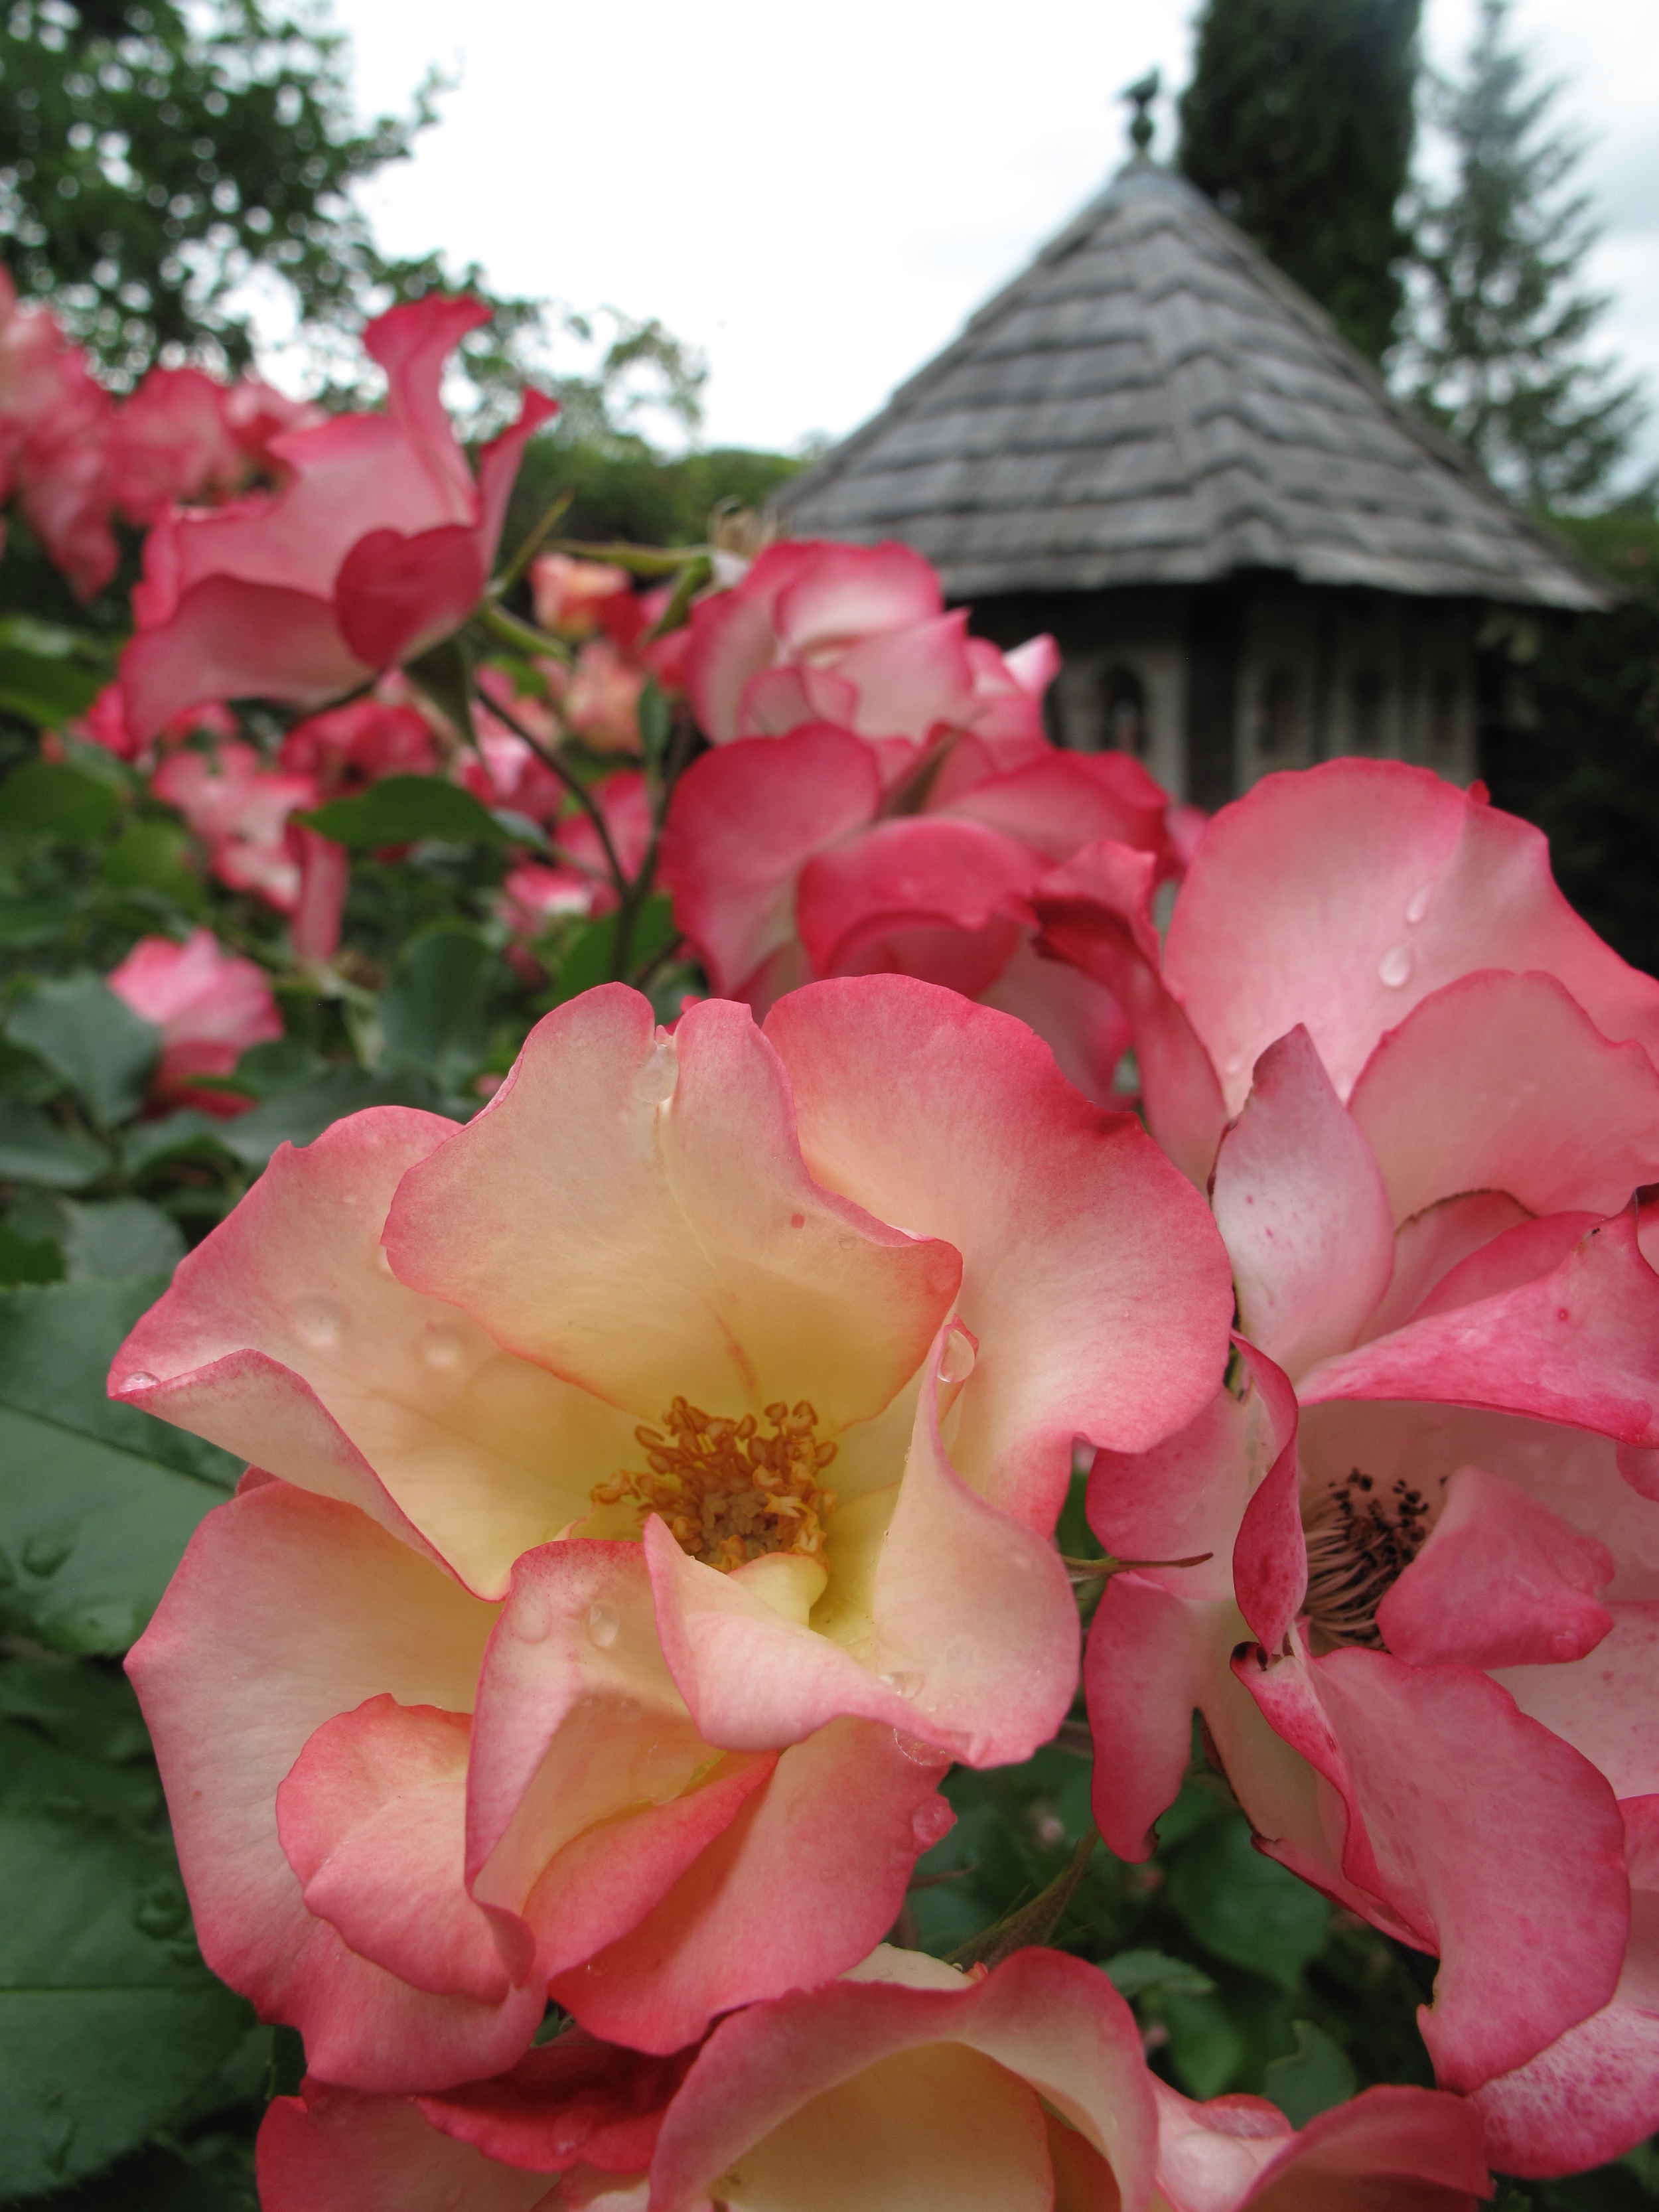 Roses and cute little wooden houses at the Jardin de Boissonna